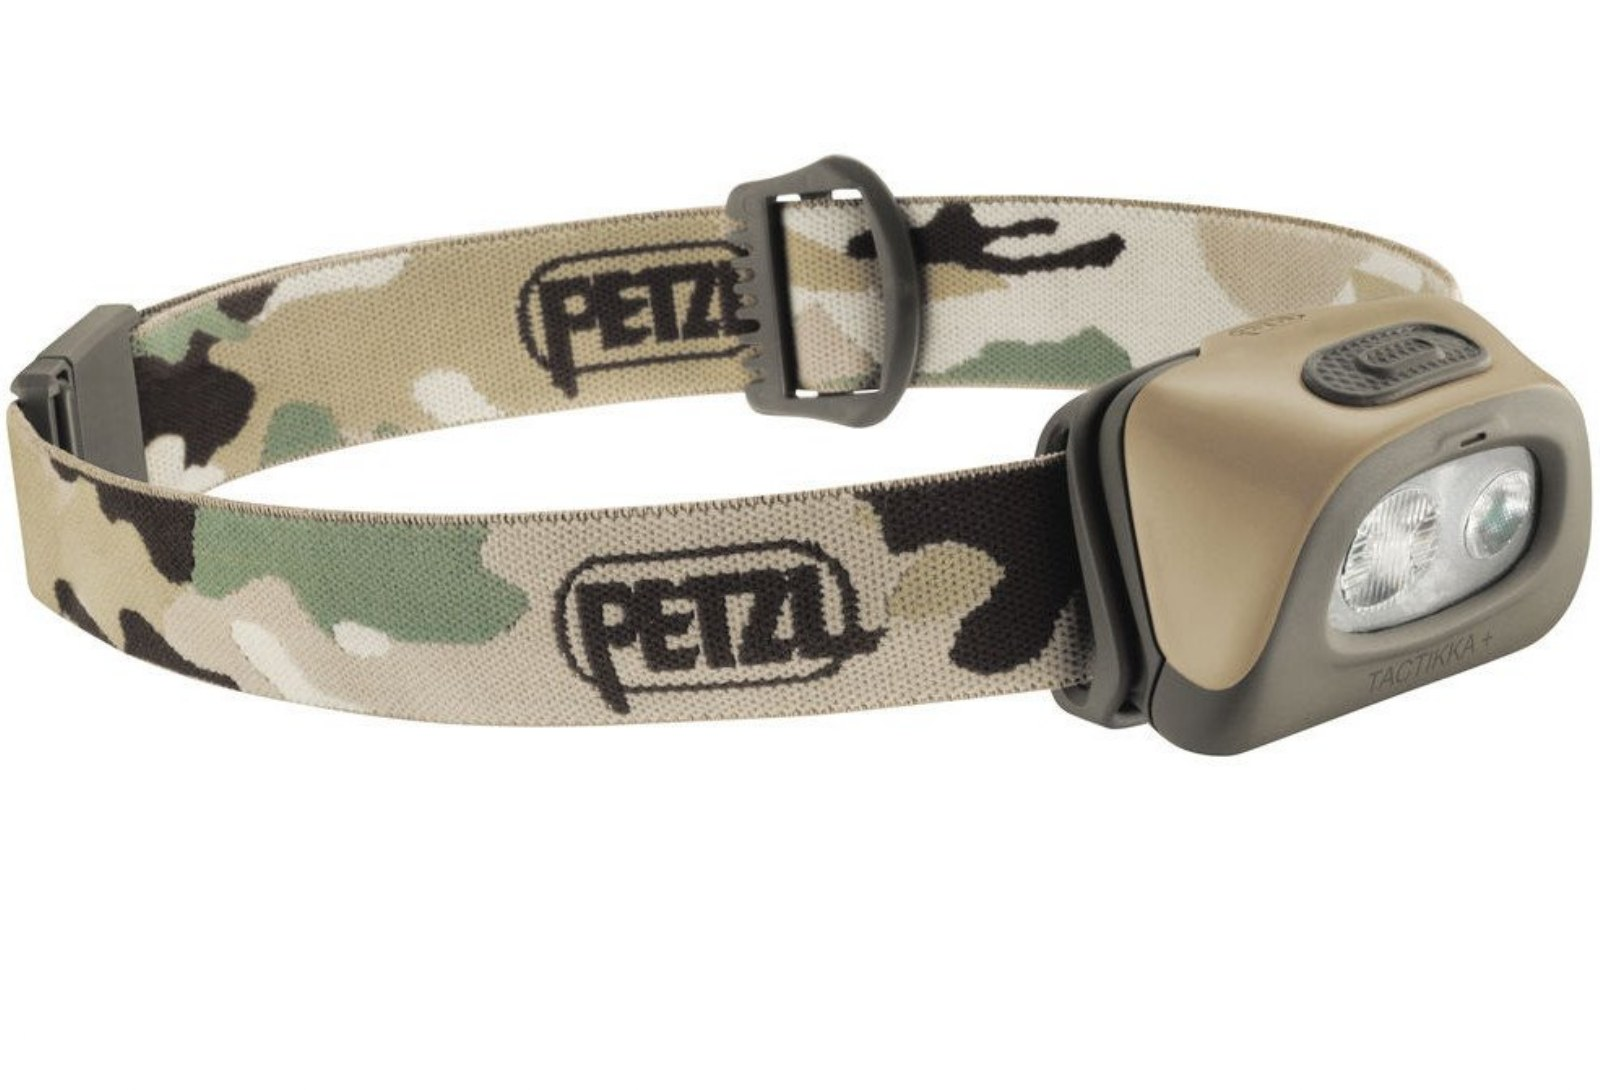 PETZL® TAKTIKKA+® Professional Military Outdoor Headlamp 250Lm Hybrid - Multicam